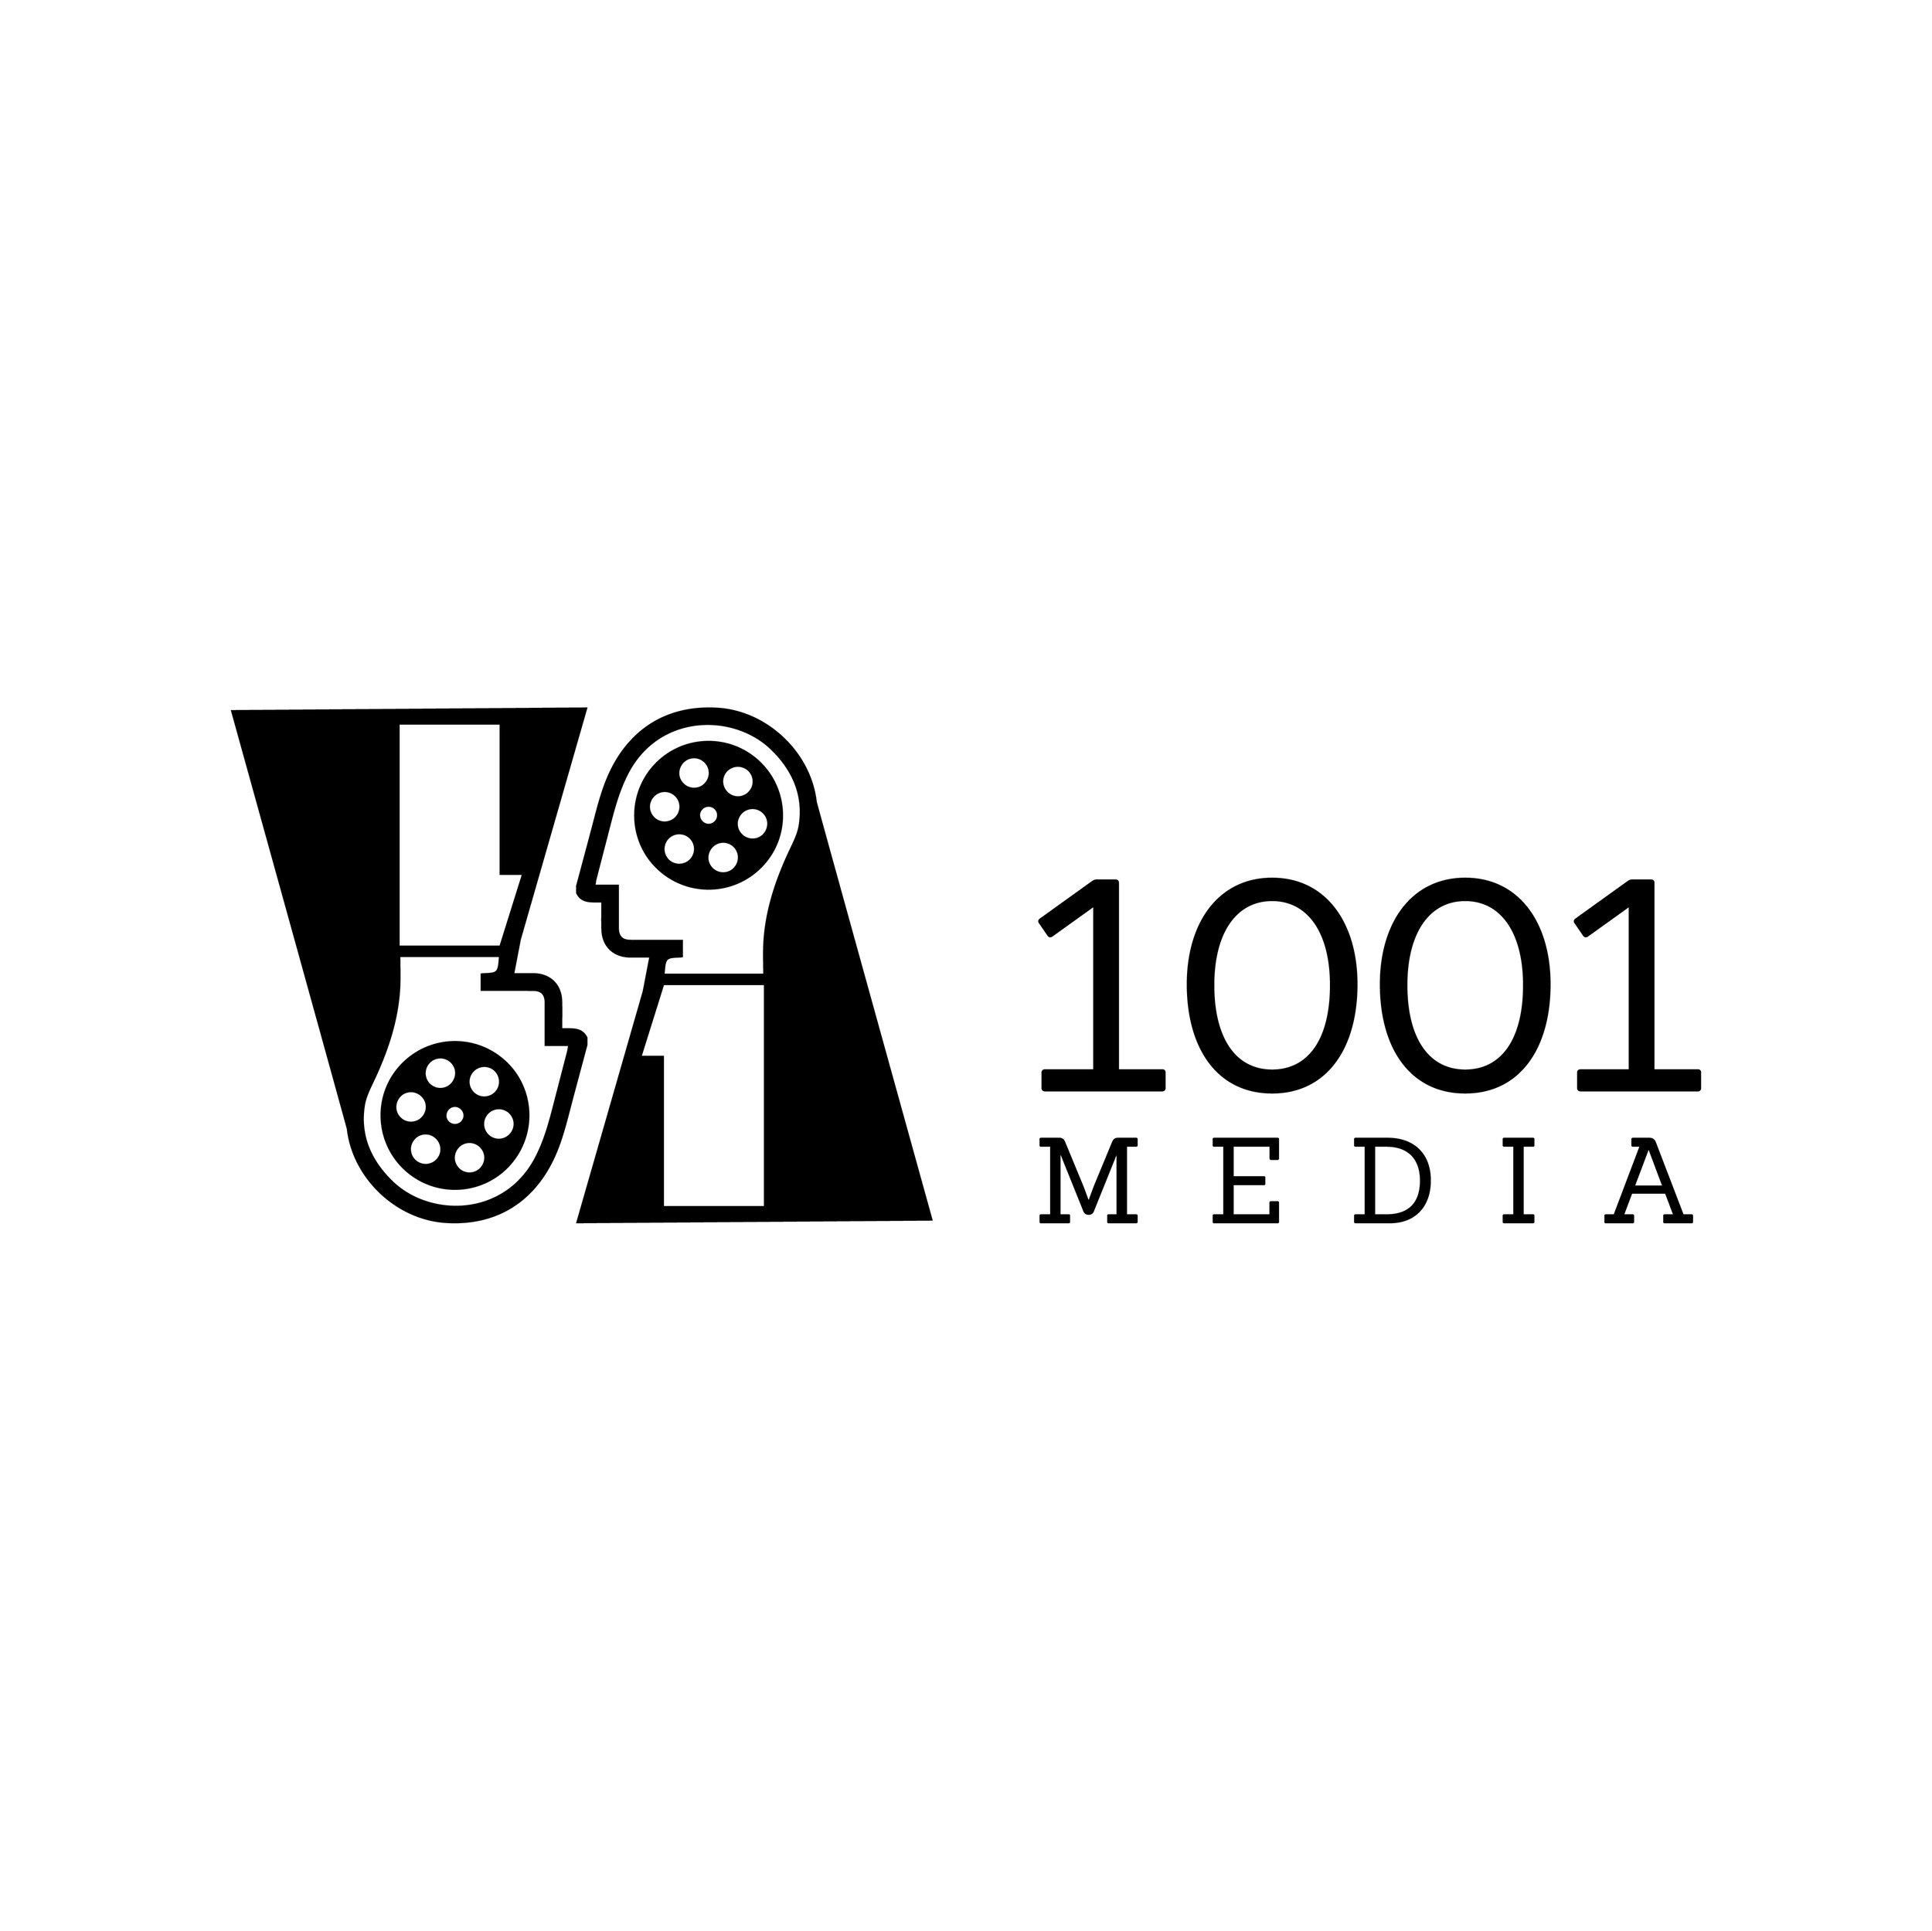 """1001 MEDIA - 1001 MEDIA is an independent documentary film production company harnessing the power of film and virtual reality technology to bring """"West Meets East"""" stories to a global audience. Founded in 2013 with a vision to reclaim the rich Arab tradition of storytelling, 1001 MEDIA has become an innovator in social action documentaries.Our films have reinvigorated the documentary film experience by using VR, film and partnerships to create stories that highly engage the audience and inspire viewers to extend our relationship beyond the theater. Not only have our films invoked compassion and overcome stereotypes, they helped communities to take action towards positive change."""